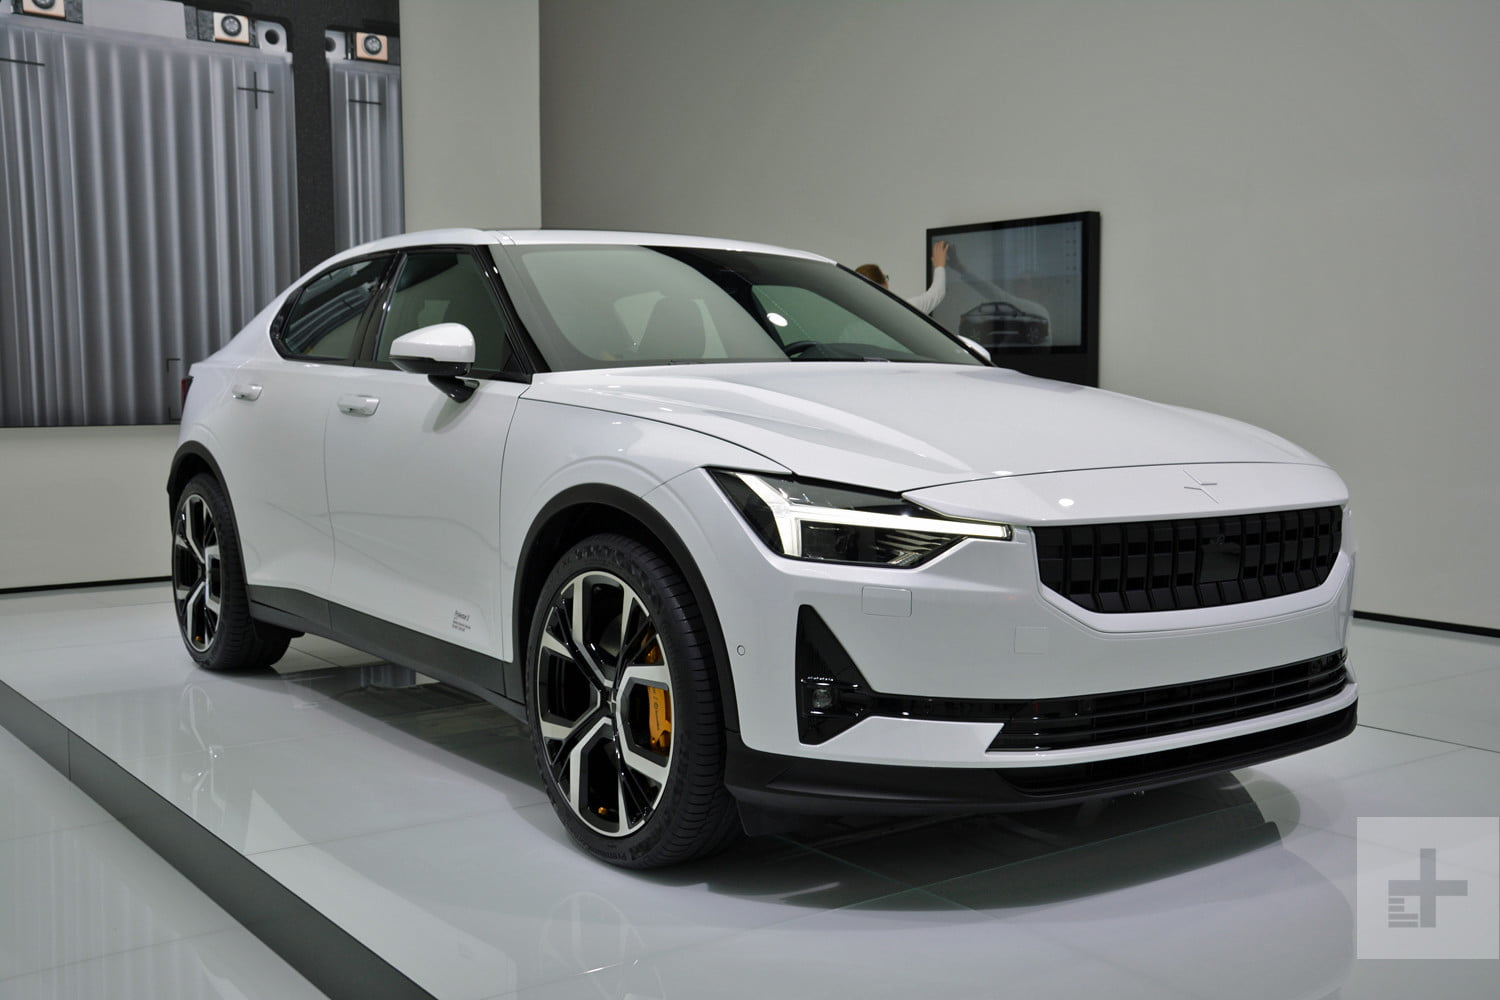 Google and Volvo helped Polestar craft its answer to the Tesla Model 3